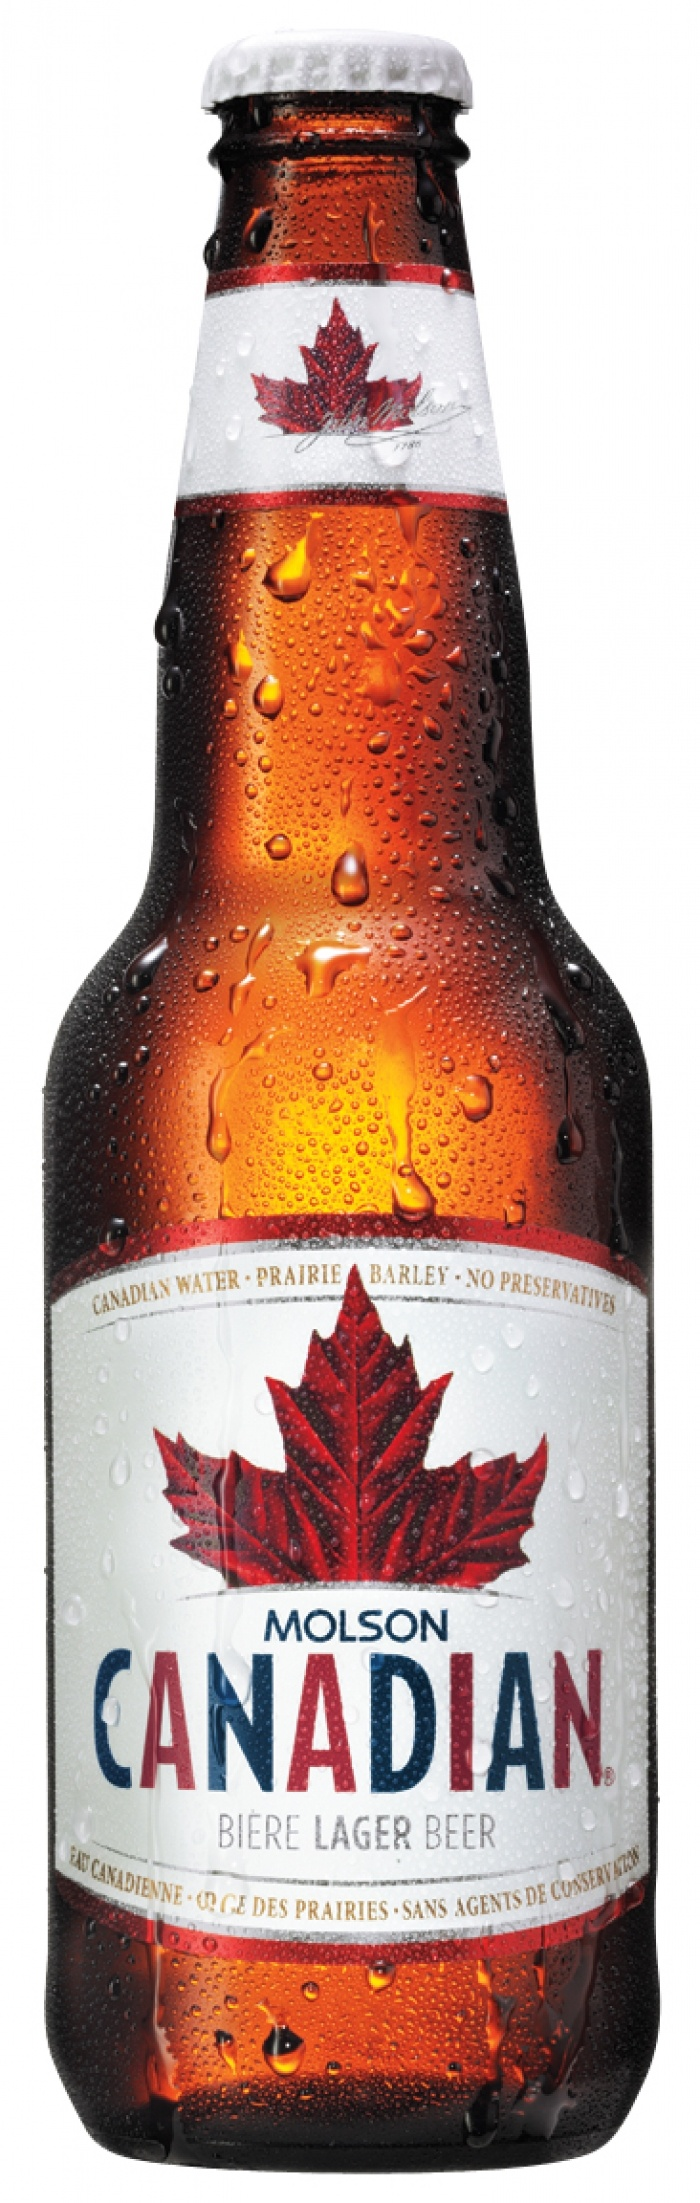 I AM CANADIAN, Molson Canadian, founded in Montreal, Quebec.